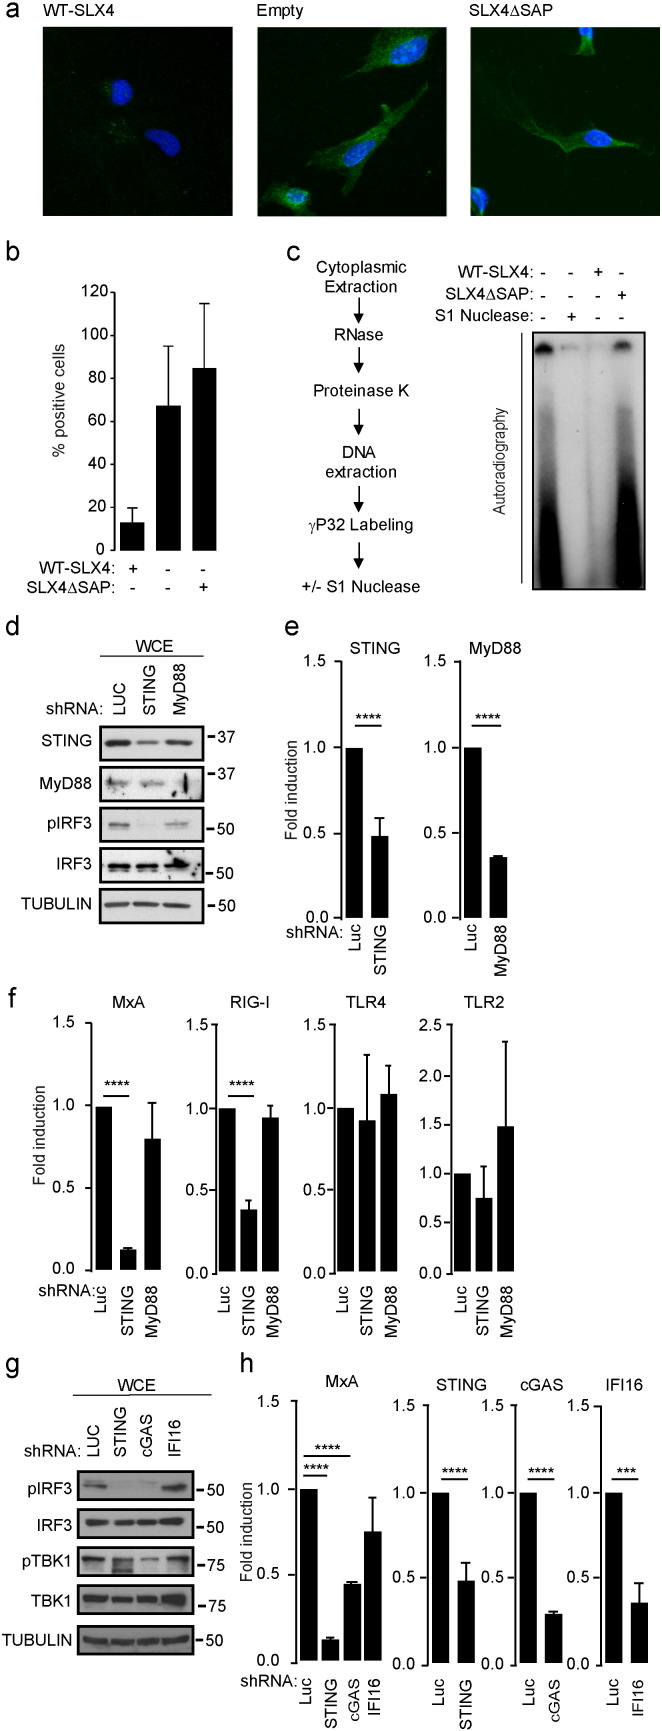 Cytoplasmic accumulation of ssDNA is responsible for pro-inflammatory signals in SLX4 deficiency. (A) Immunofluorescence analysis was performed on RA3331, RA3331 SLX4  and RA3331 SLX4ΔSAP  using ssDNA-specific antibody and DAPI nuclear staining. Images are representative of at least 4 independent experiments. (B) Quantification of staining observed in A. (C) Left panel: experimental scheme. Briefly, cytoplasmic extraction was performed on RA3331, RA3331 SLX4  and RA3331 SLX4ΔSAP  followed by RNase cocktail (RNase A and RNase T1) and proteinase K treatments prior to DNA extraction and radiolabeling. DNA extracted from RA3331 cells was subjected or not to a subsequent S1 Nuclease treatment prior to separation on acrylamide gel and autoradiography. Right panel: autoradiography of a representative experiment. (D) WCE from RA3331 expressing  Luciferase- ,  MYD88- , or  STING -targeting inducible shRNAs were analyzed by WB using indicated antibodies. (E) Graphs present RT-qPCR quantification of knock-down efficiency, measured using specific primers, as mean (±SD) mRNA expression relative to cells expressing  Luciferase -targeting shRNA from 3 independent experiments. (F) MxA, RIG-I, TLR4 and TLR2 mRNA levels were measured in cells described in D. Graphs present means (±SD) of 3 independent experiments as fold increase mRNA expression relative to cells expressing a  Luciferase  targeting shRNA. (G) WCE from RA3331 expressing  Luciferase ,  STING ,  cGAS  or  IFI16 -targeting inducible shRNAs were analyzed by WB using indicated antibodies. (H) MxA, STING, cGAS and IFI16 mRNA levels were measured in cells described in G. Graphs present means (±SD) of 3 independent experiments expressed as fold change in mRNA expression relative to cells expressing a  Luciferase  targeting shRNA. ****:  p